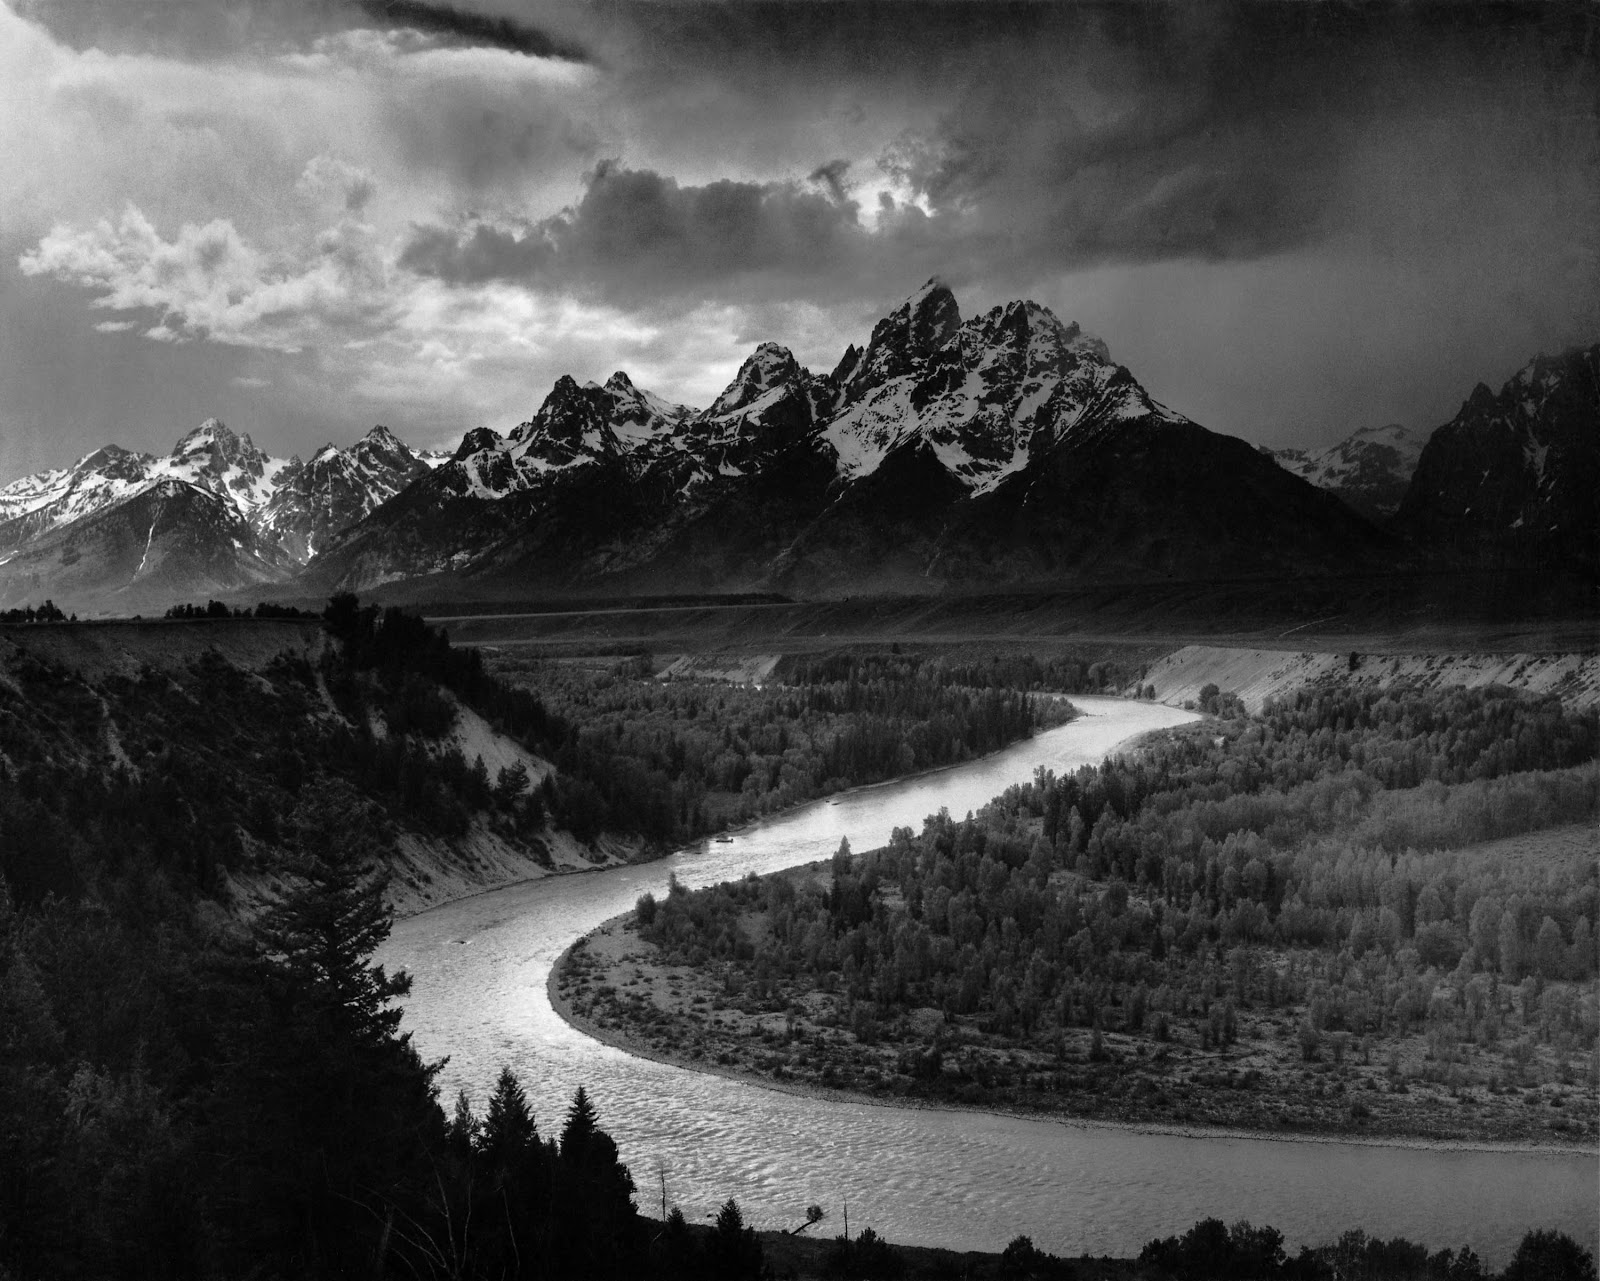 'The Tetons and the Snake River'. Ansel Adams